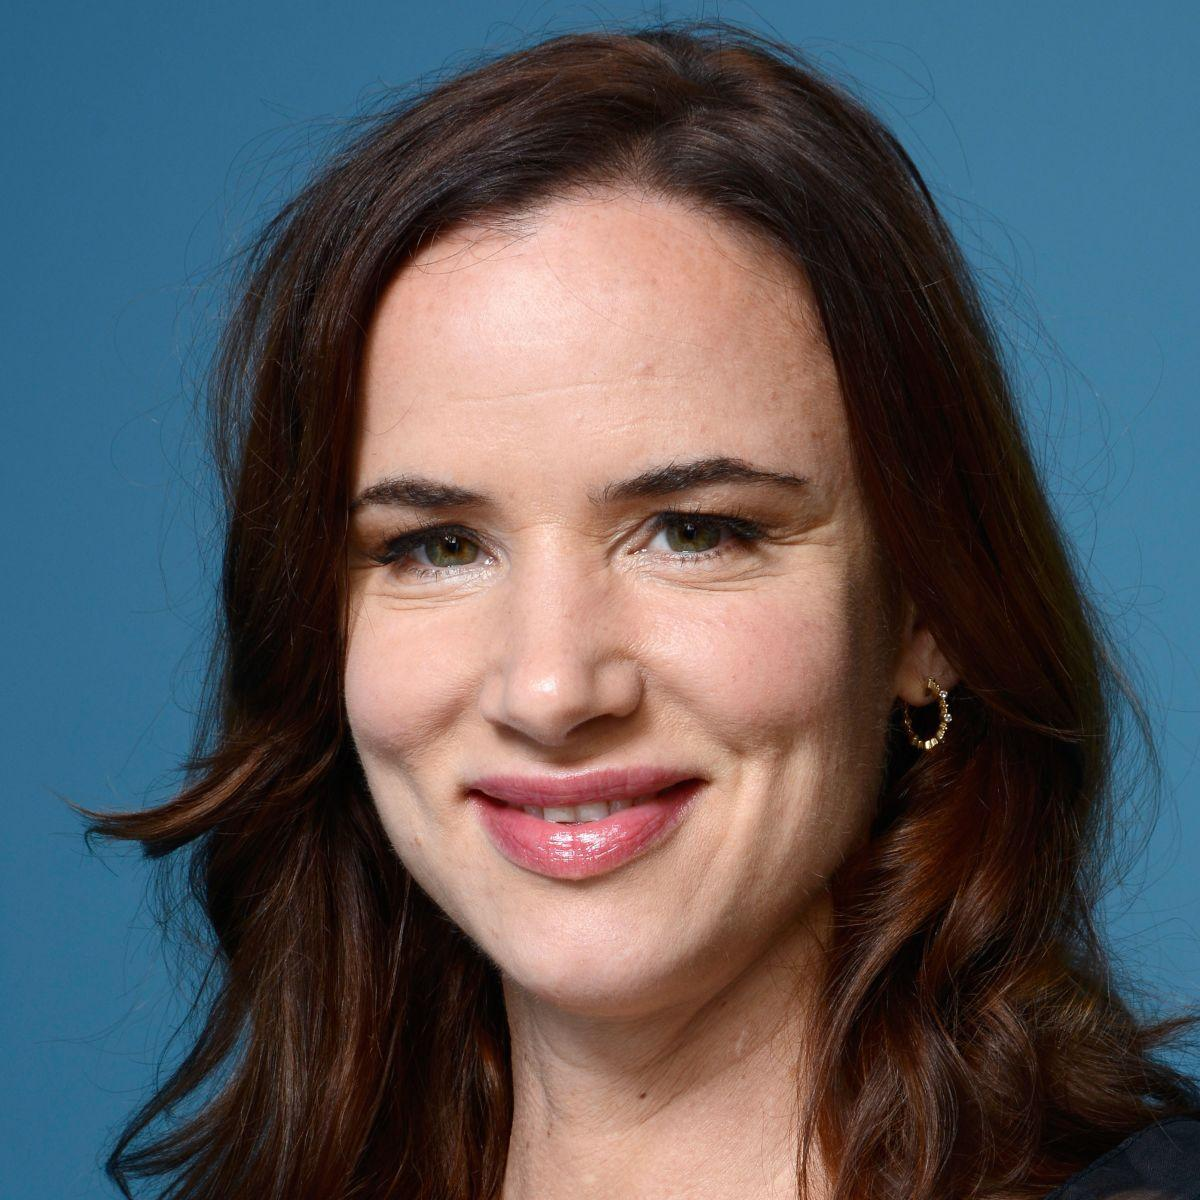 Pictures of Juliette Lewis, Picture